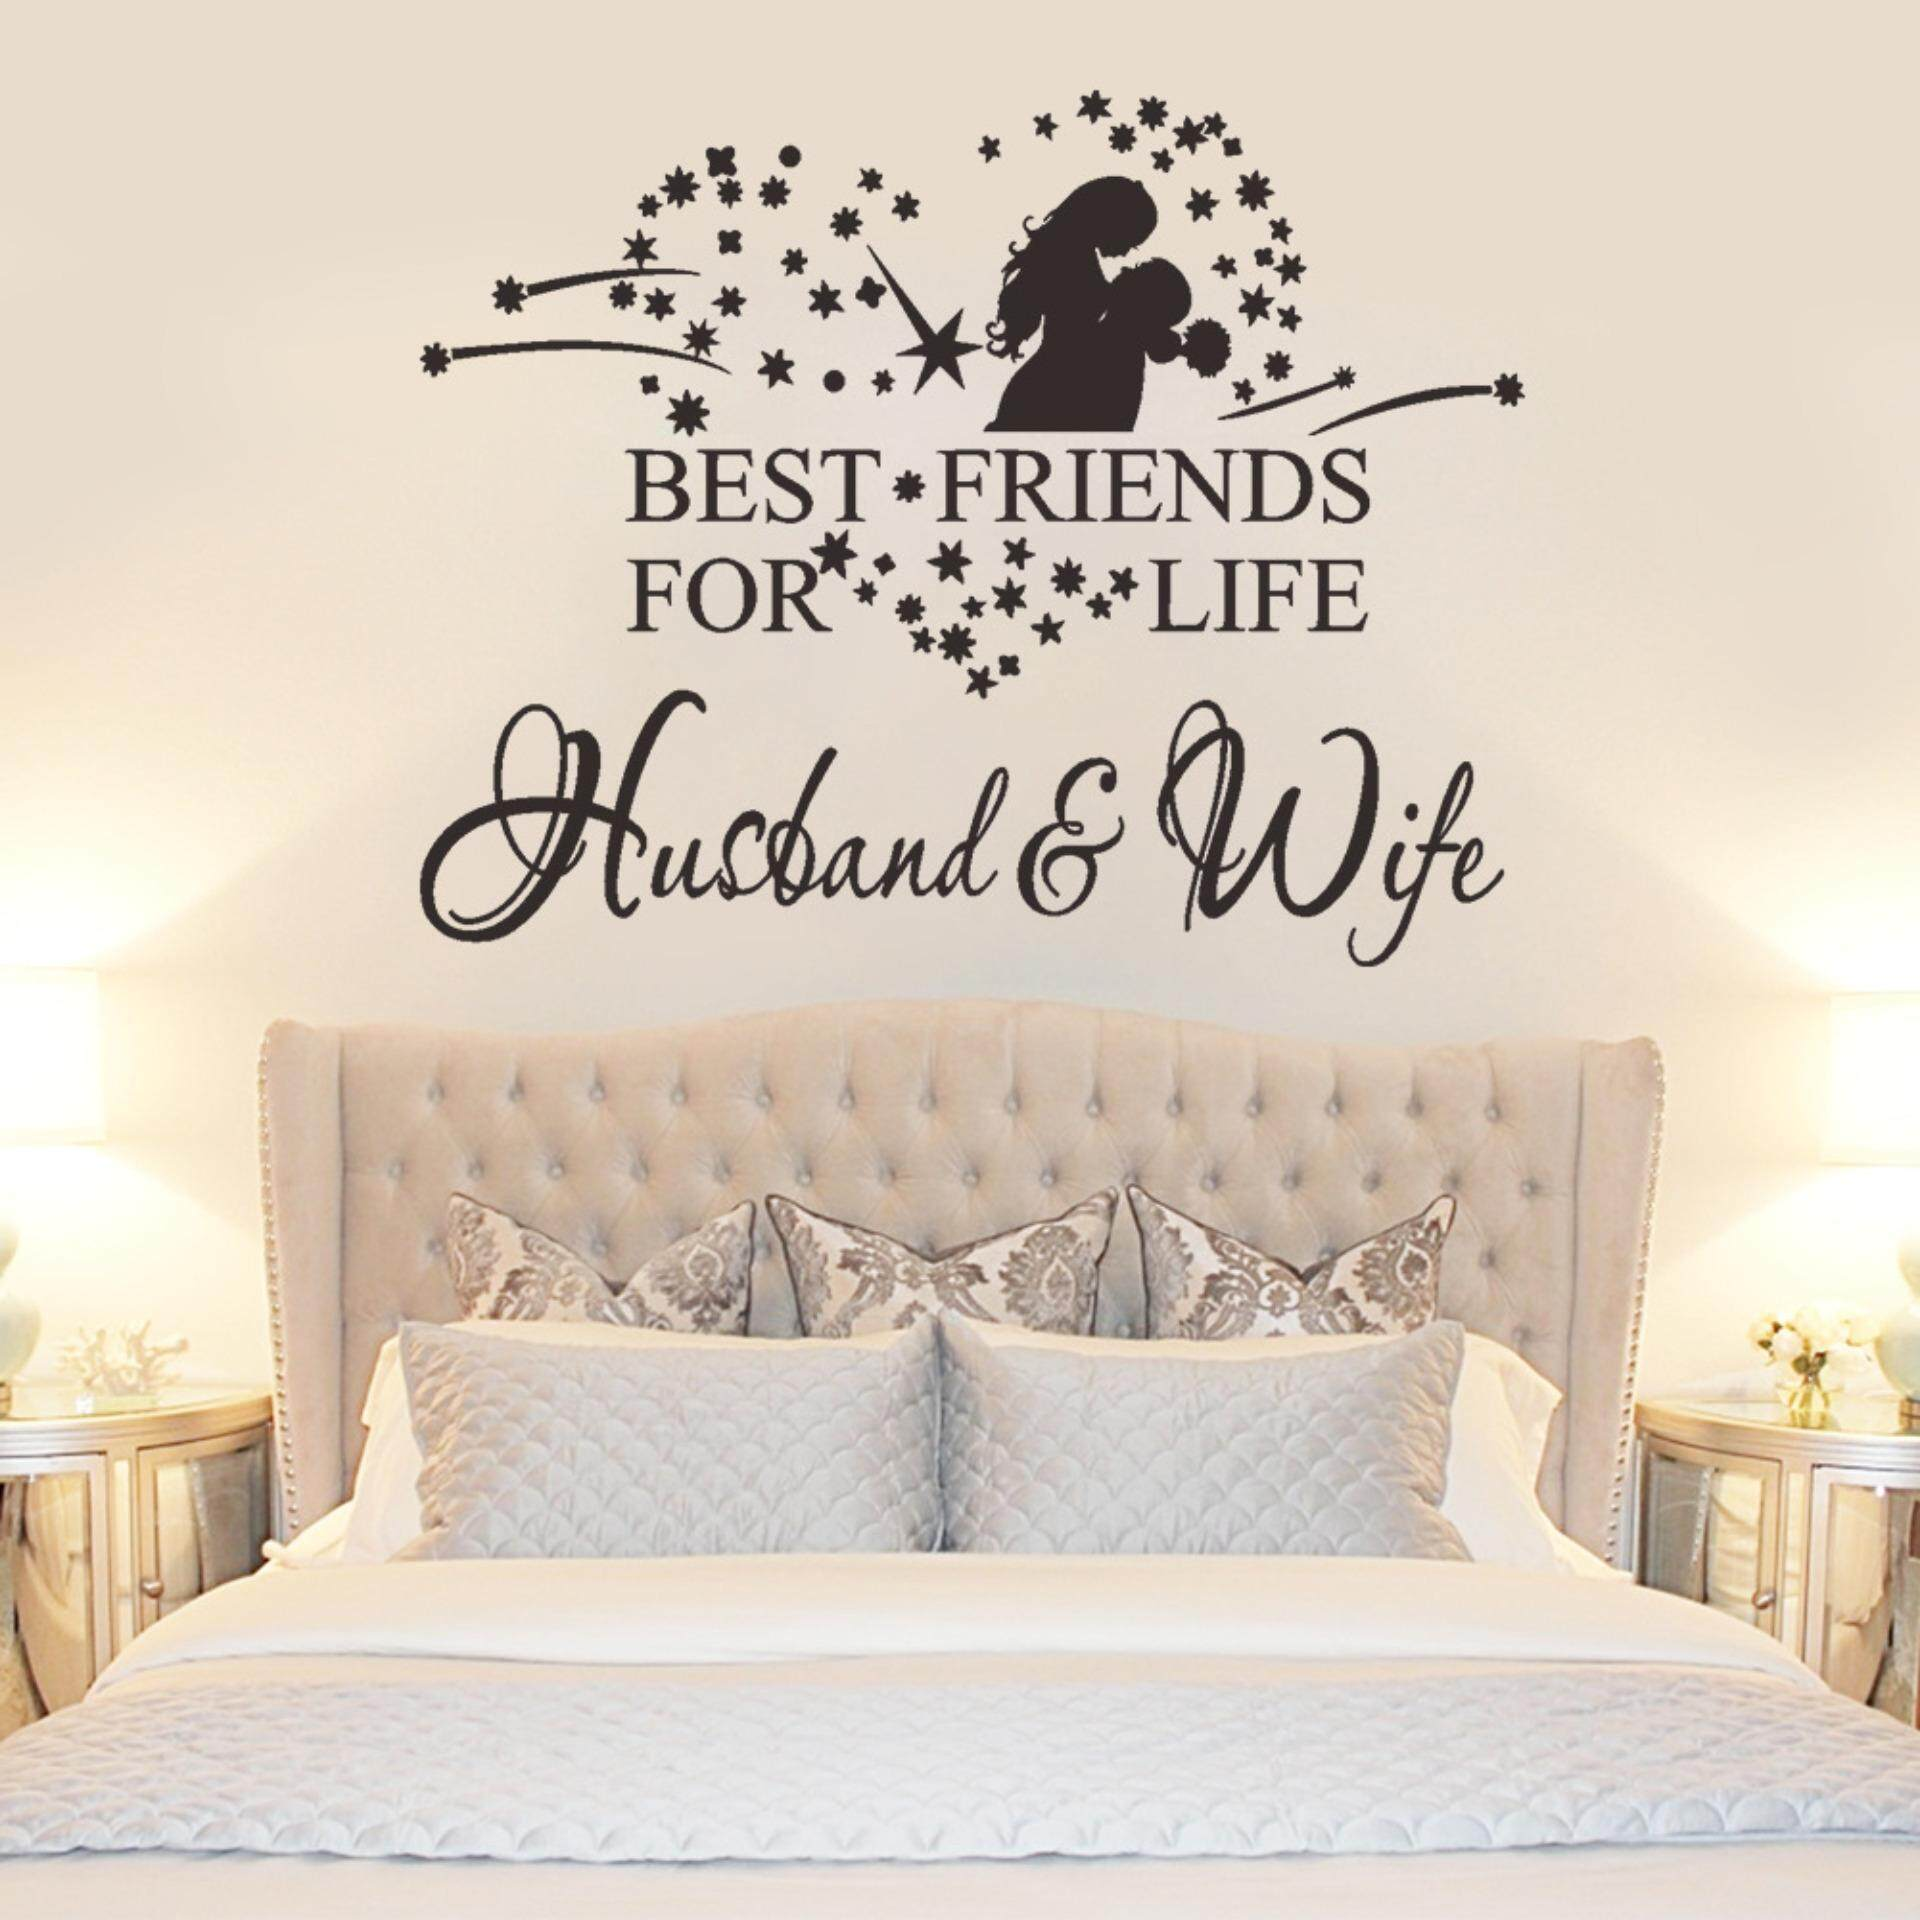 Home Wall Stickers Decals Buy At Wallpaper Sticker 42 Romantic Letters Bedroom Pvc Removable Decal Mural Diy Art Picture Room Decor